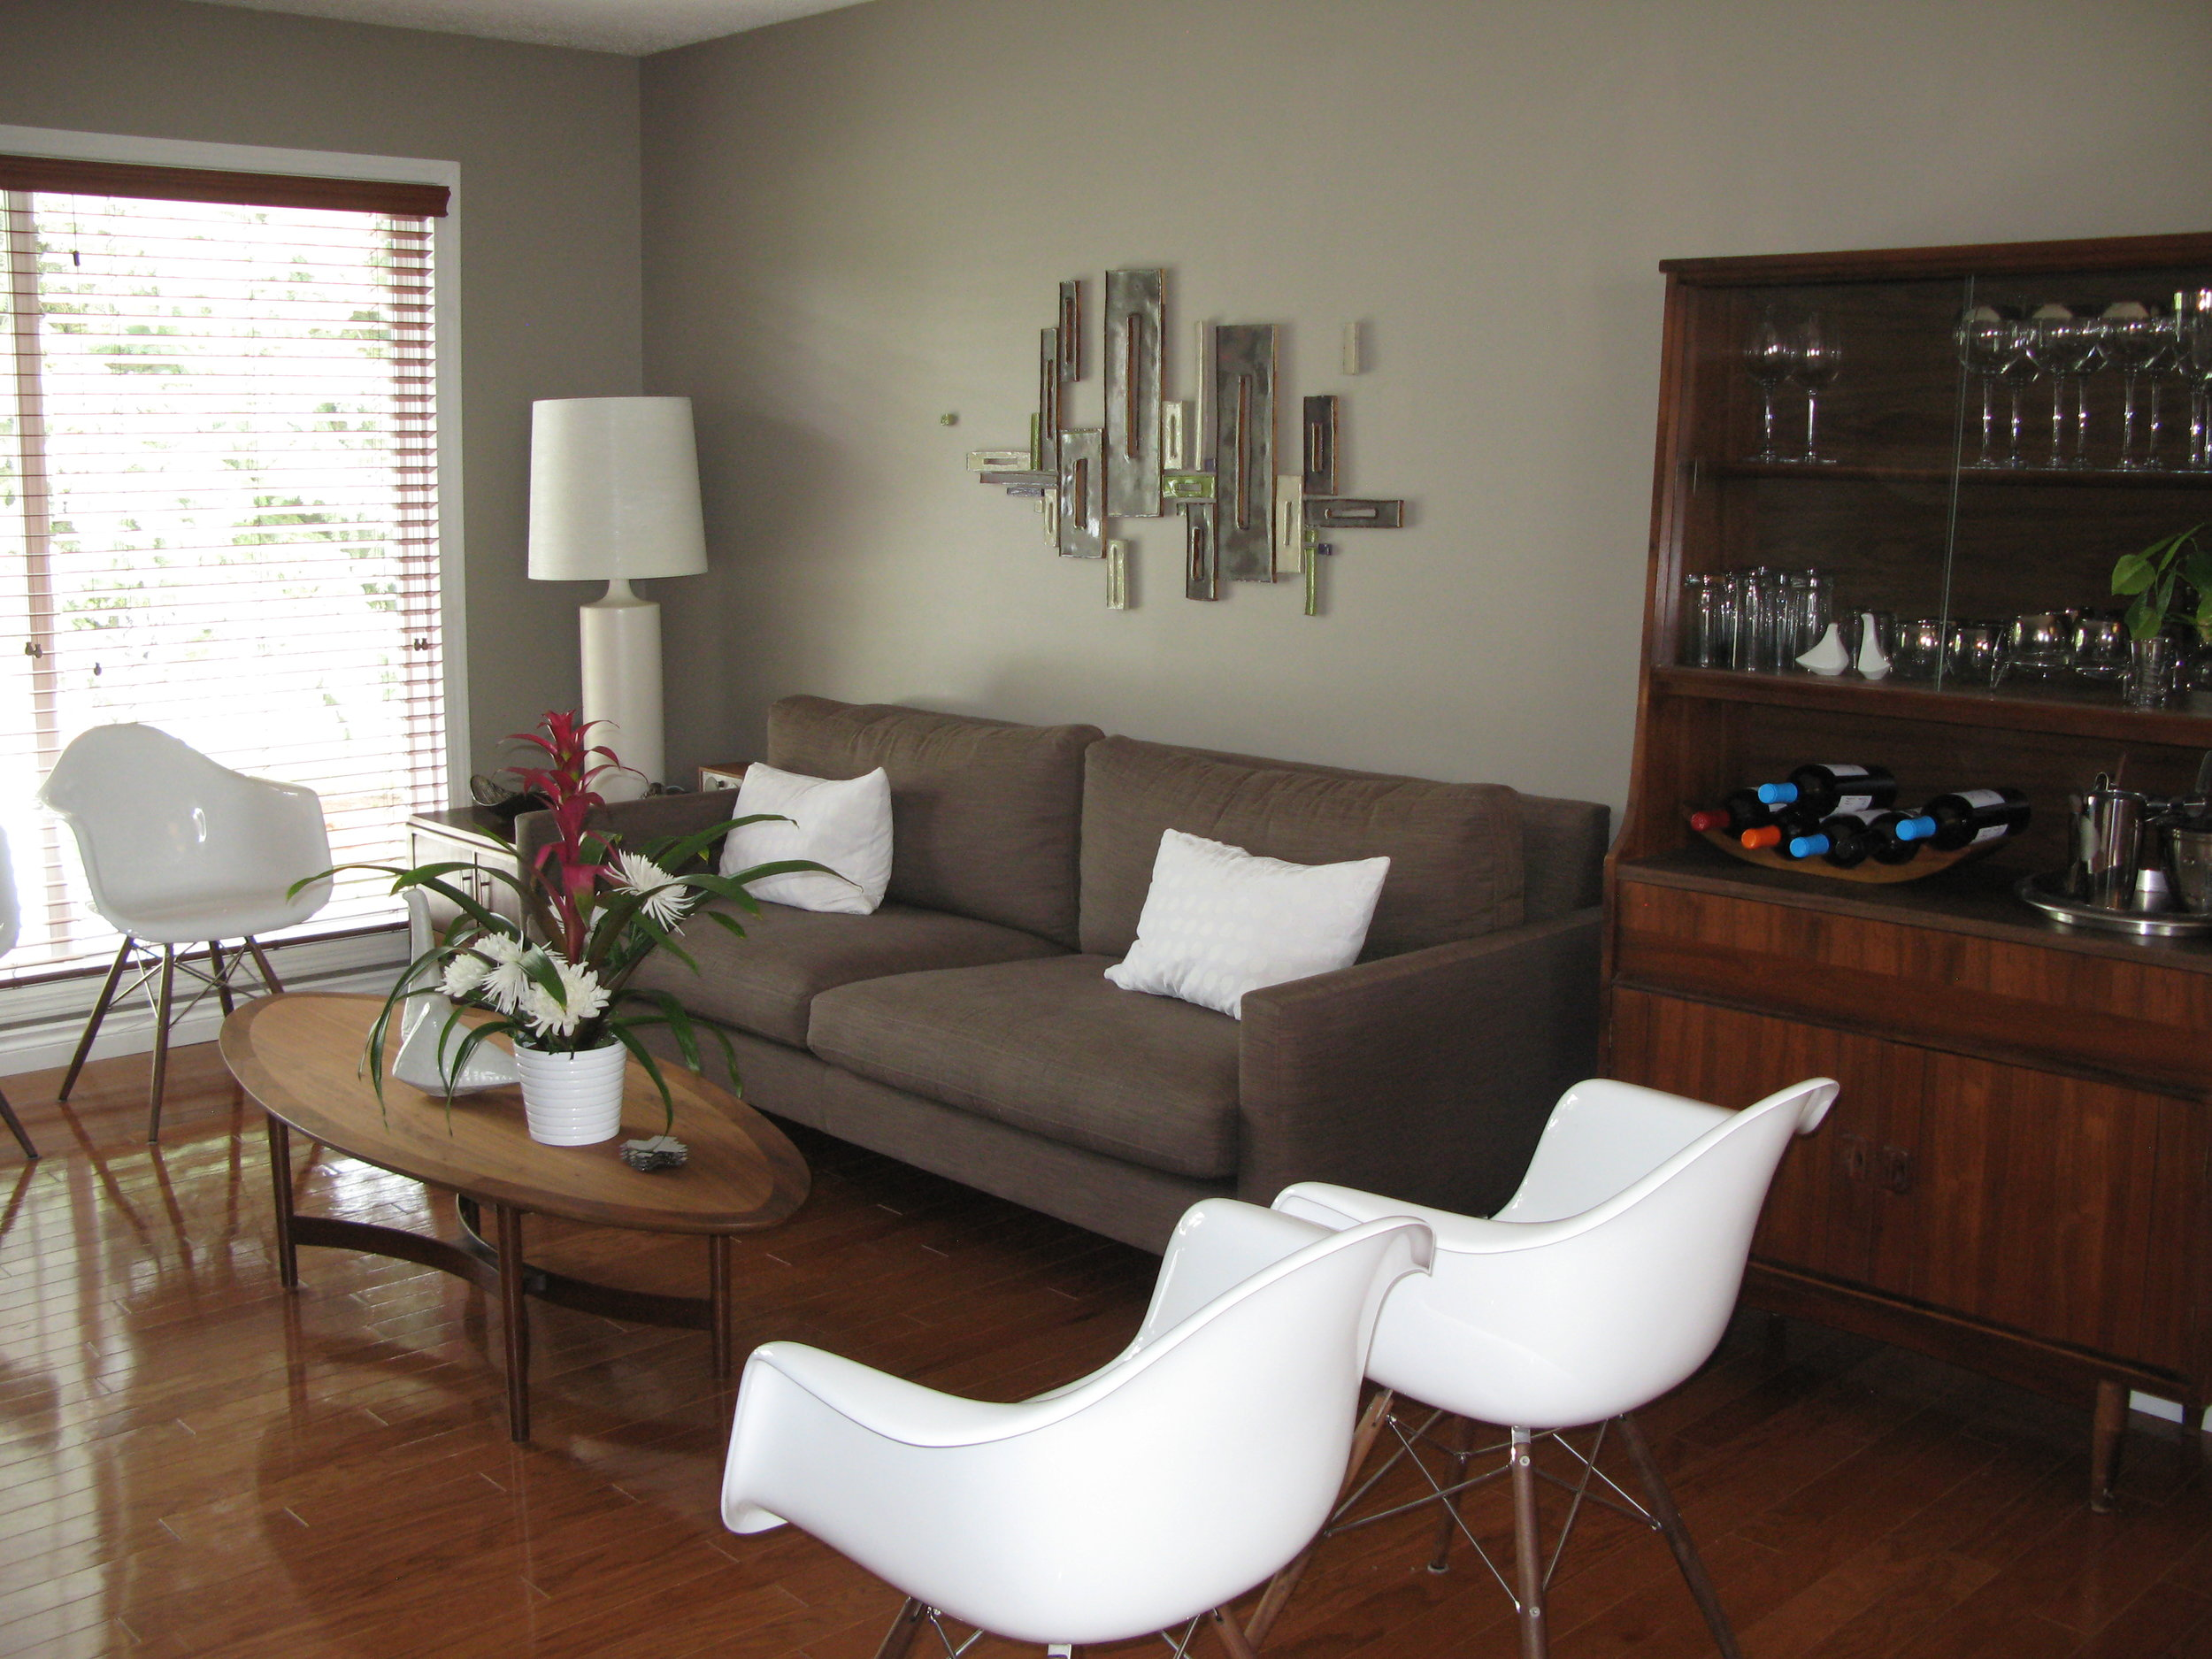 living room before (home 2)